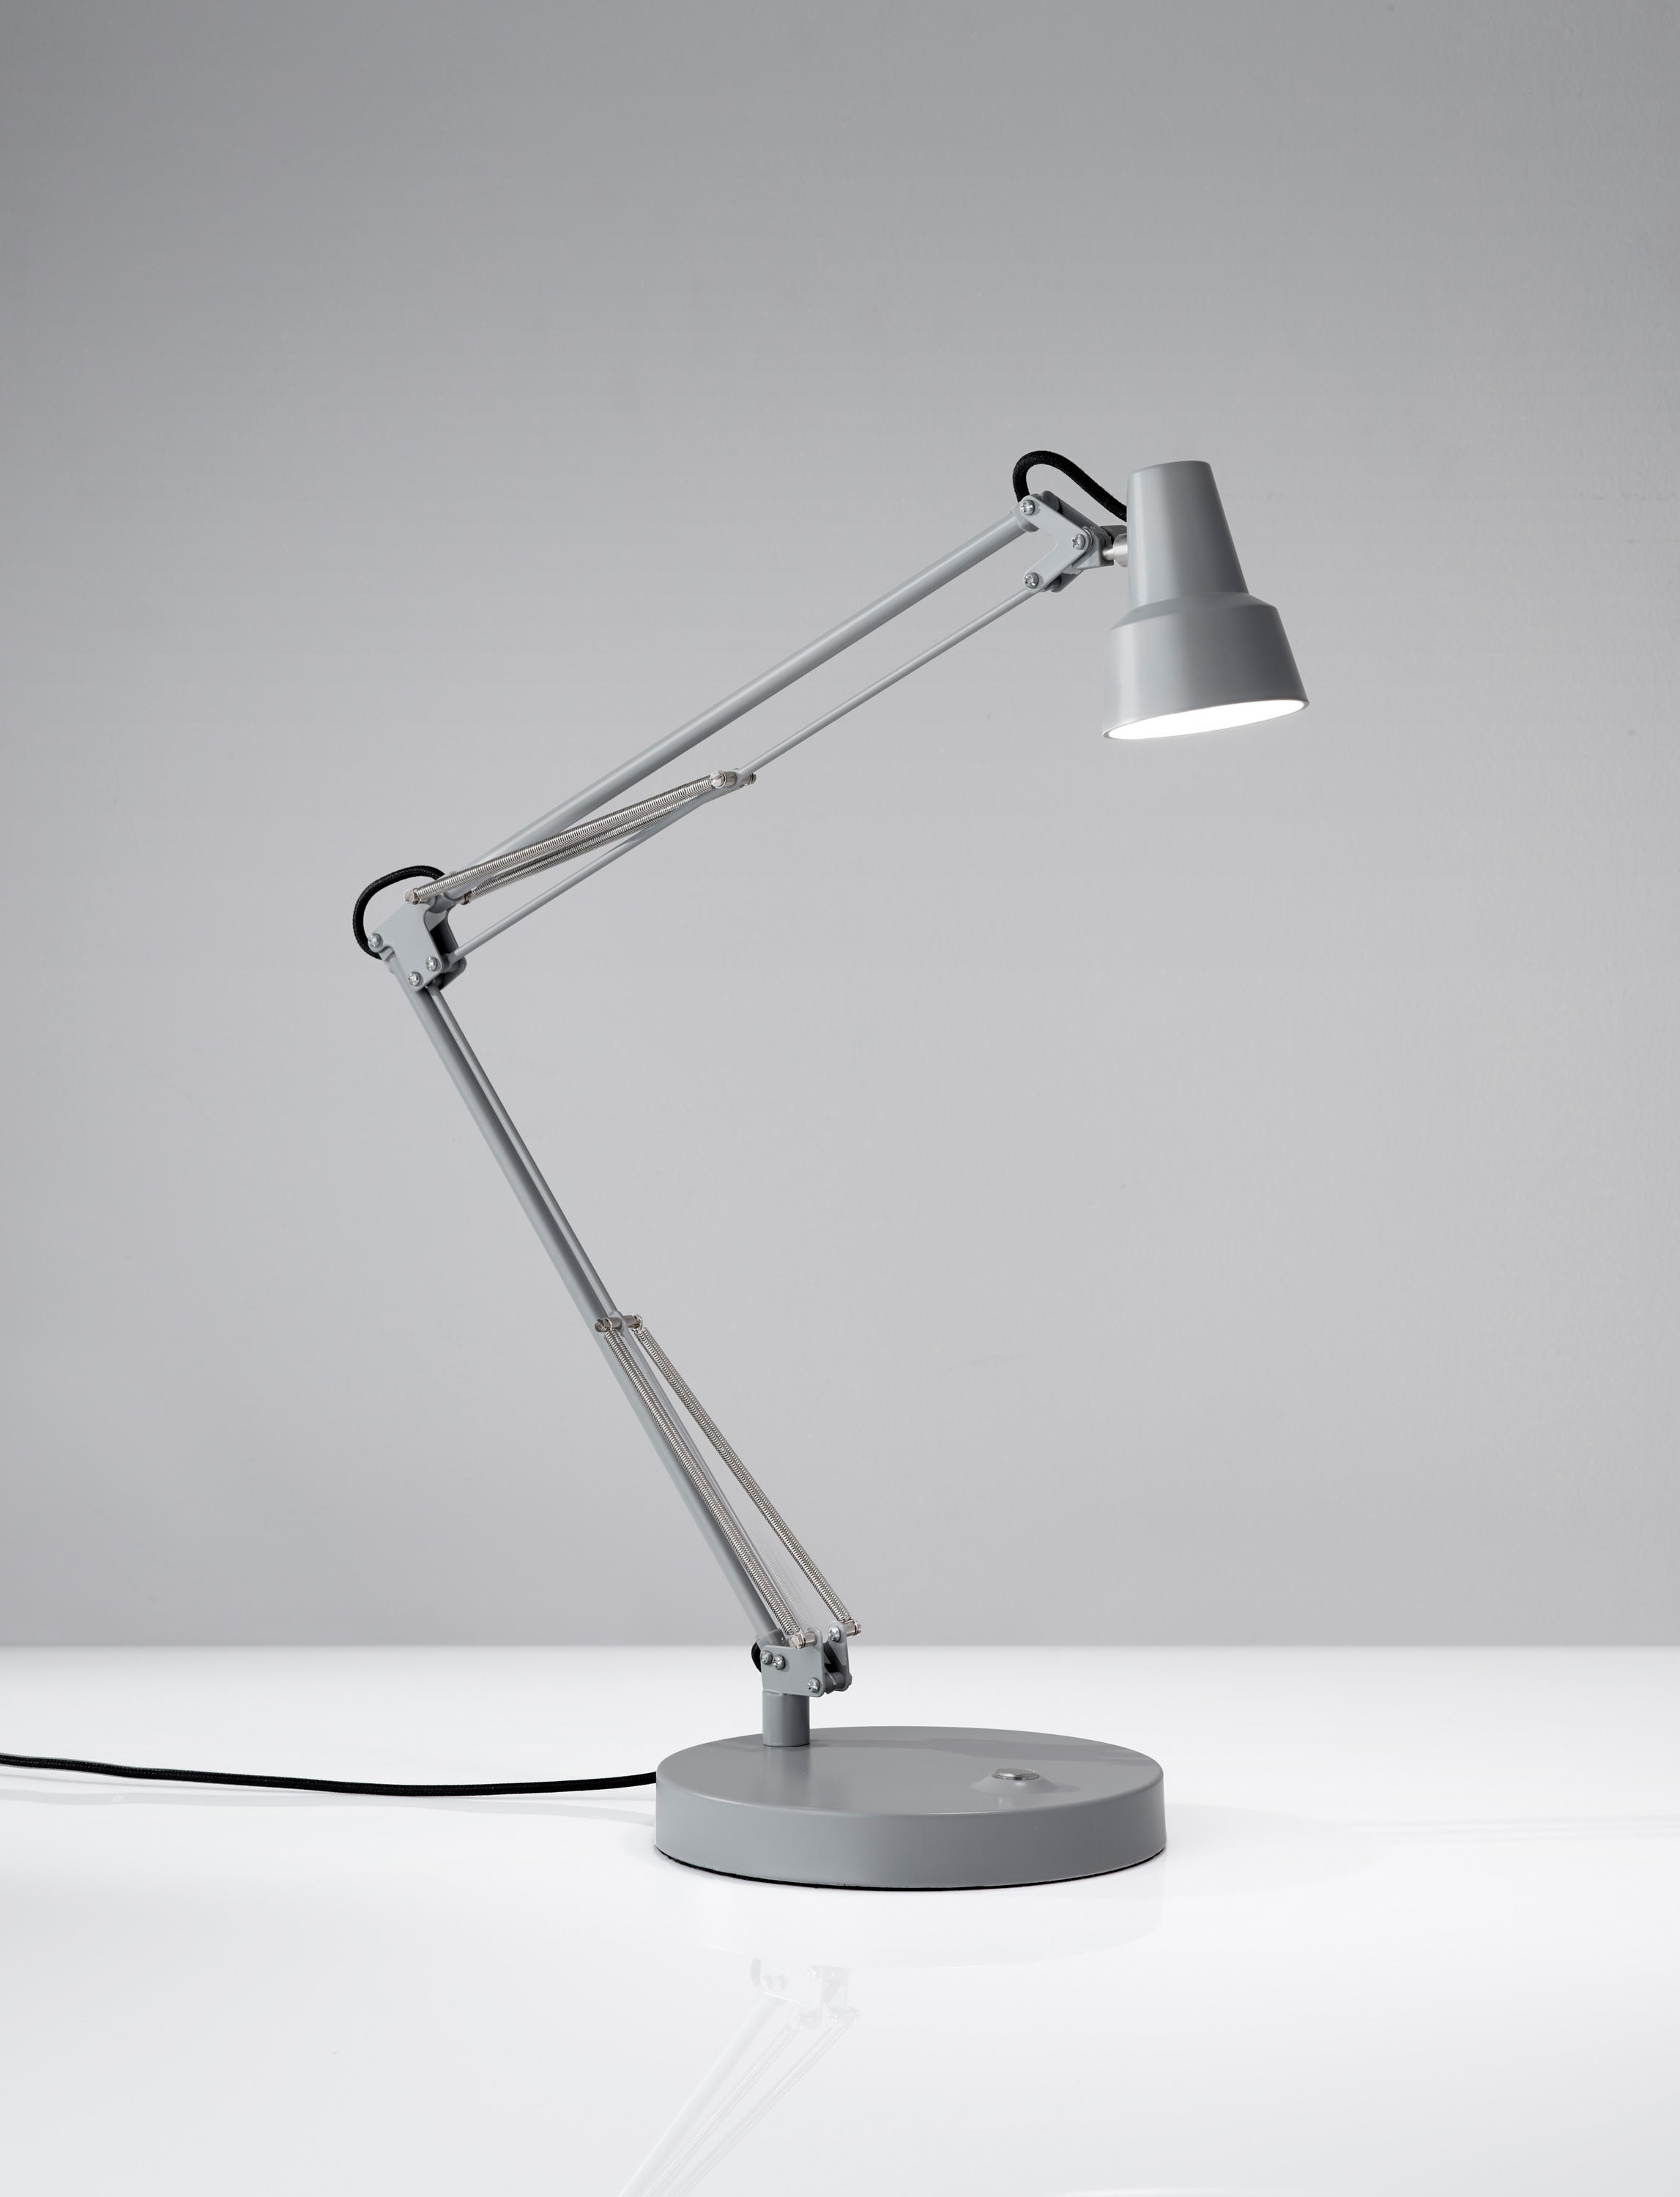 led vgradena nastolna s built en lamp with tych desk eyecare tecknet i price battery bateriq lampa kontrol in